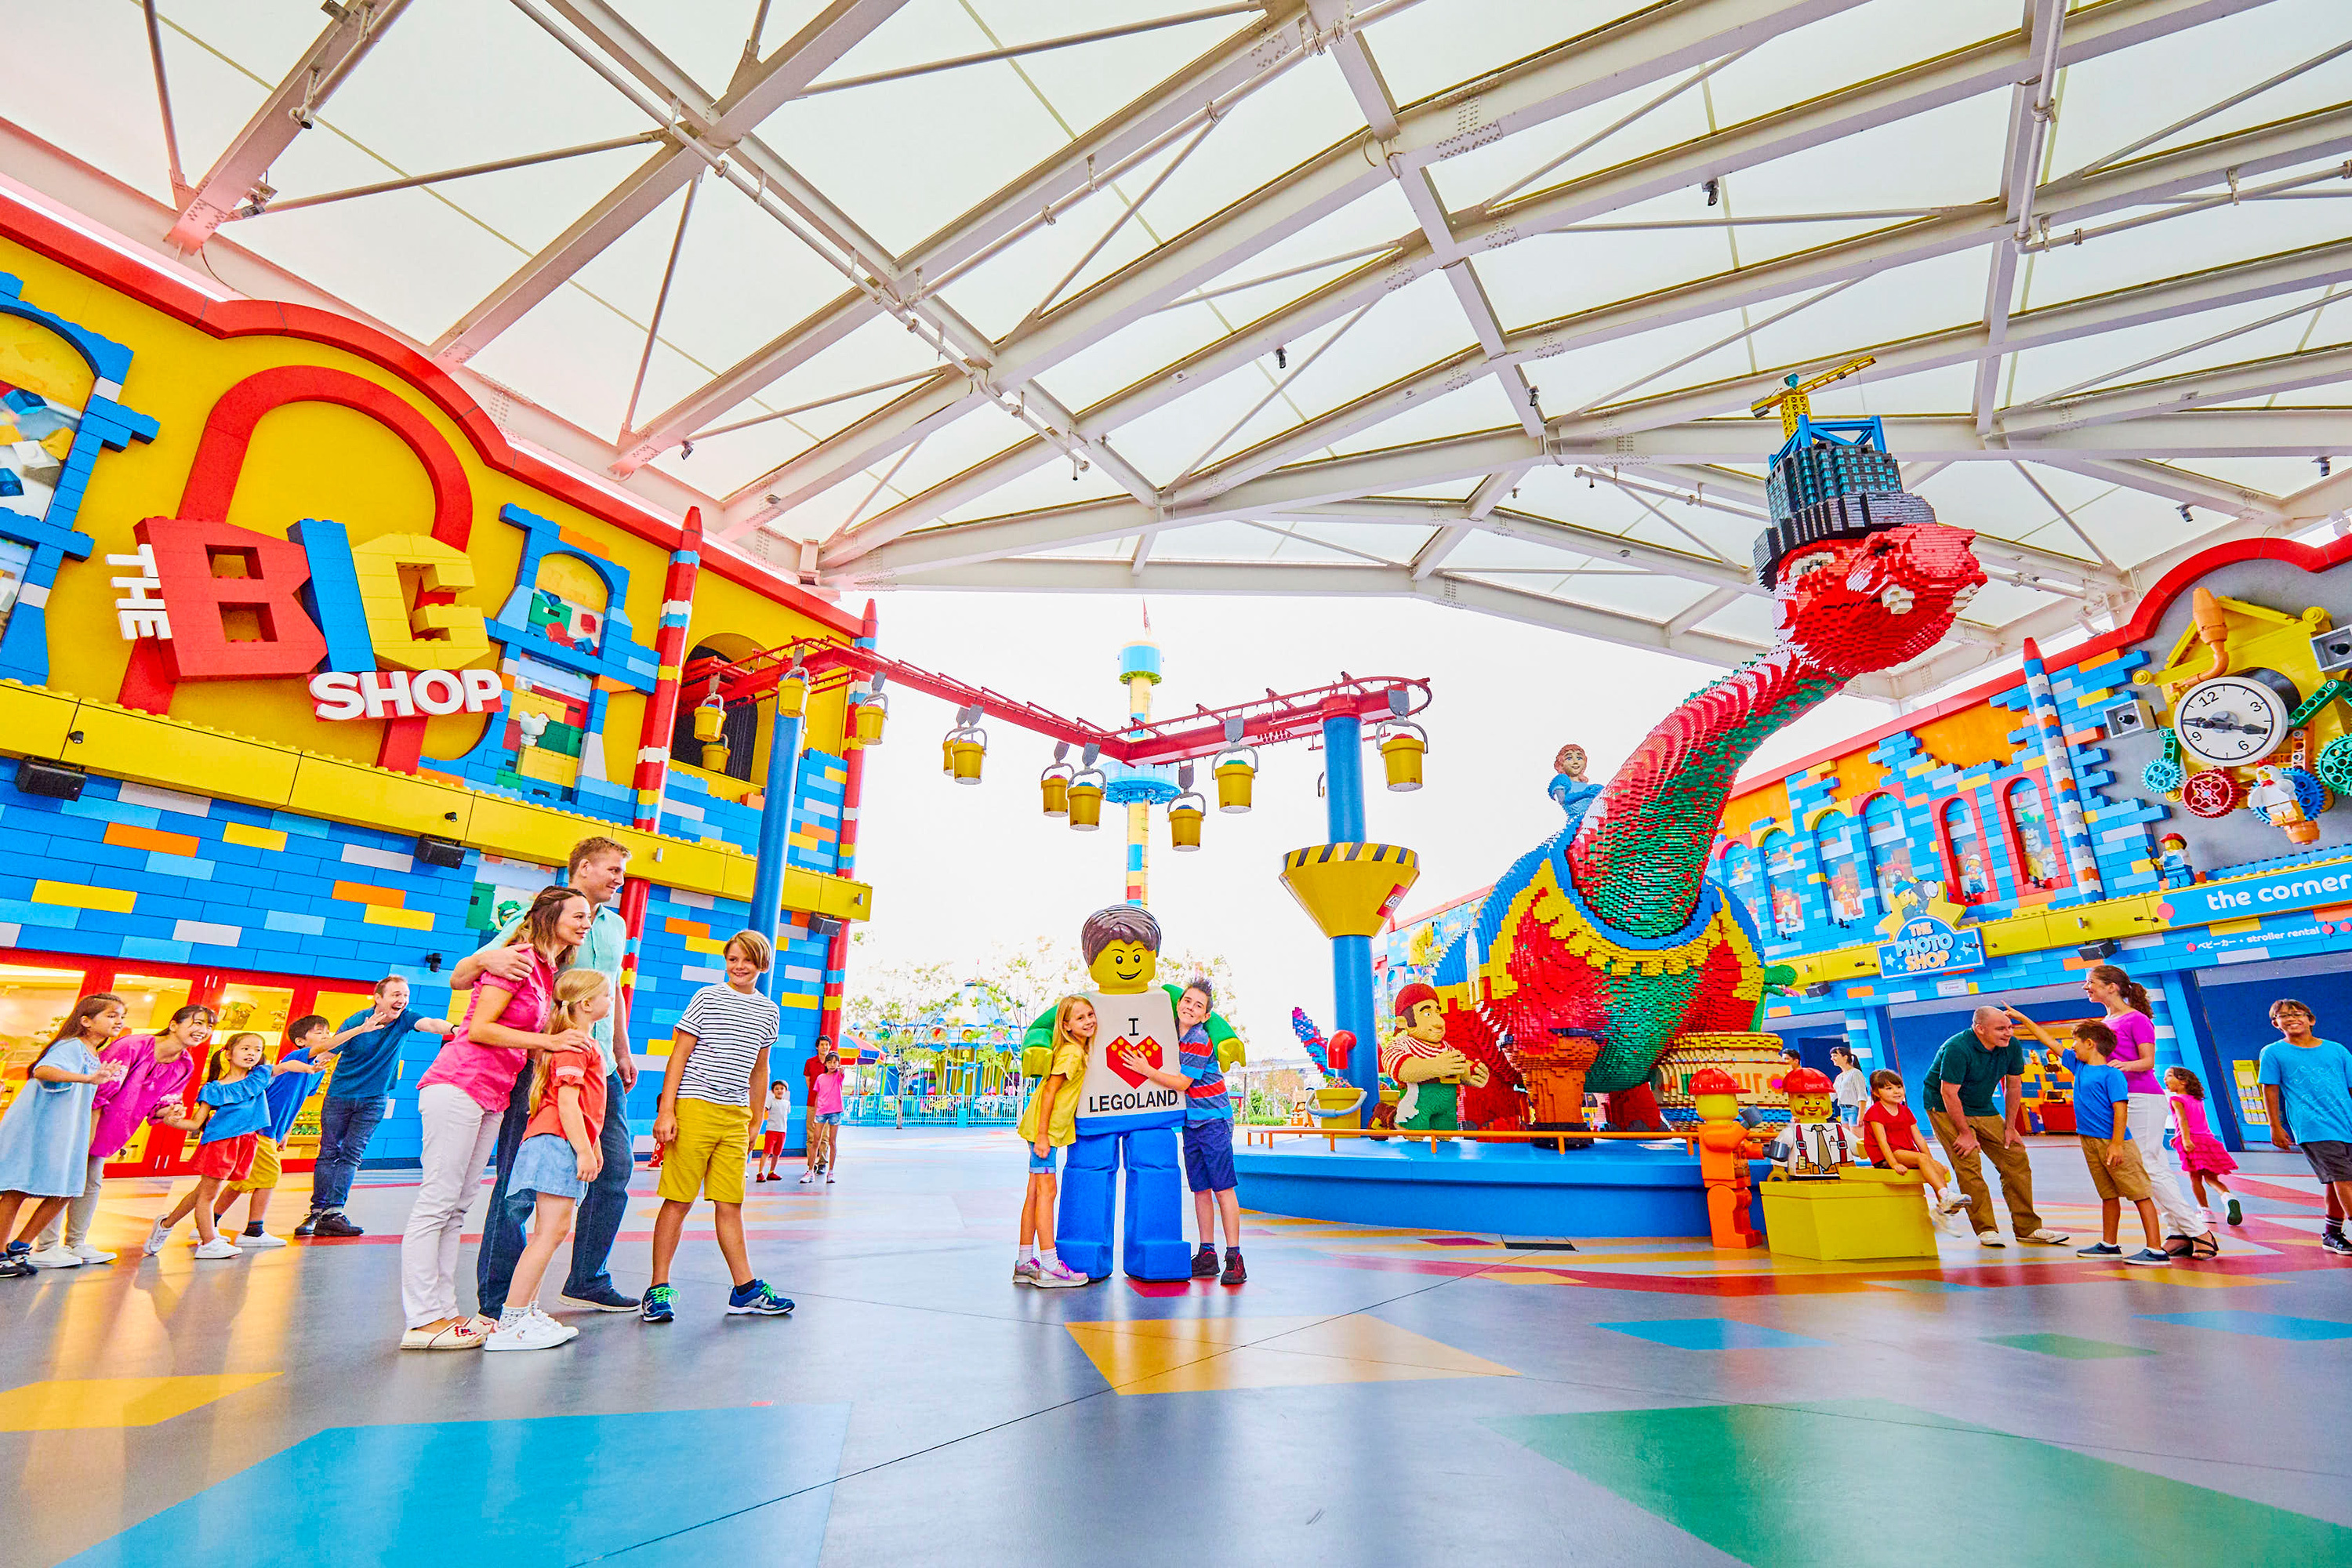 LEGOLAND New York postpones its grand opening by one year